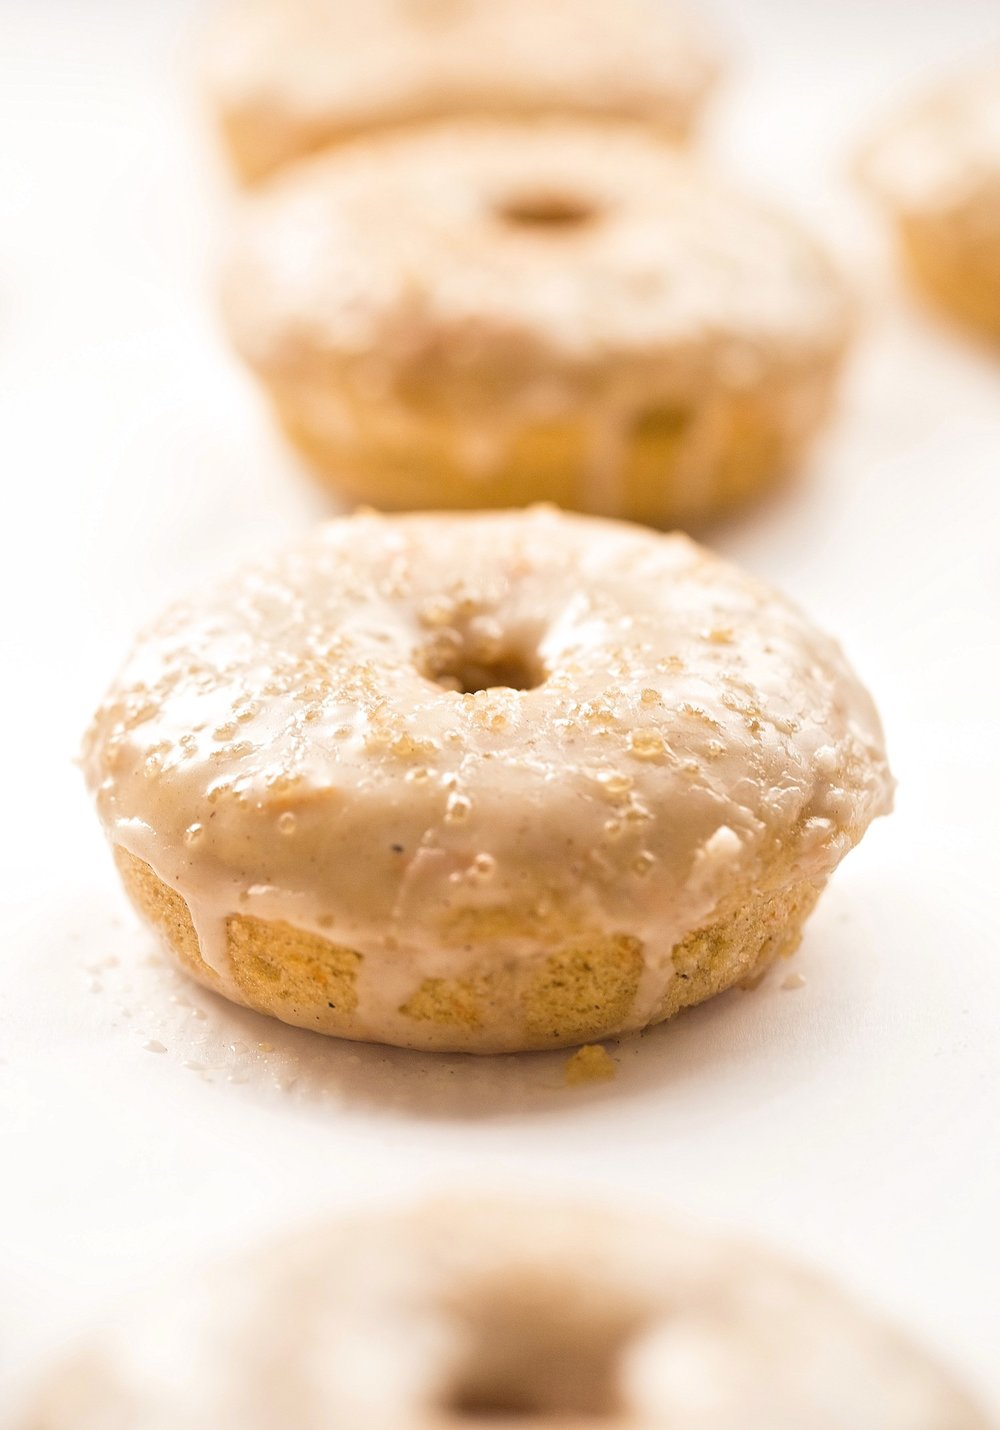 Cinnamon Glazed Baked Carrot Cake Donuts: super soft and moist donuts filled with warm fall spices, freshly grated carrots, and topped with a glossy cinnamon glaze. | TrufflesandTrends.com